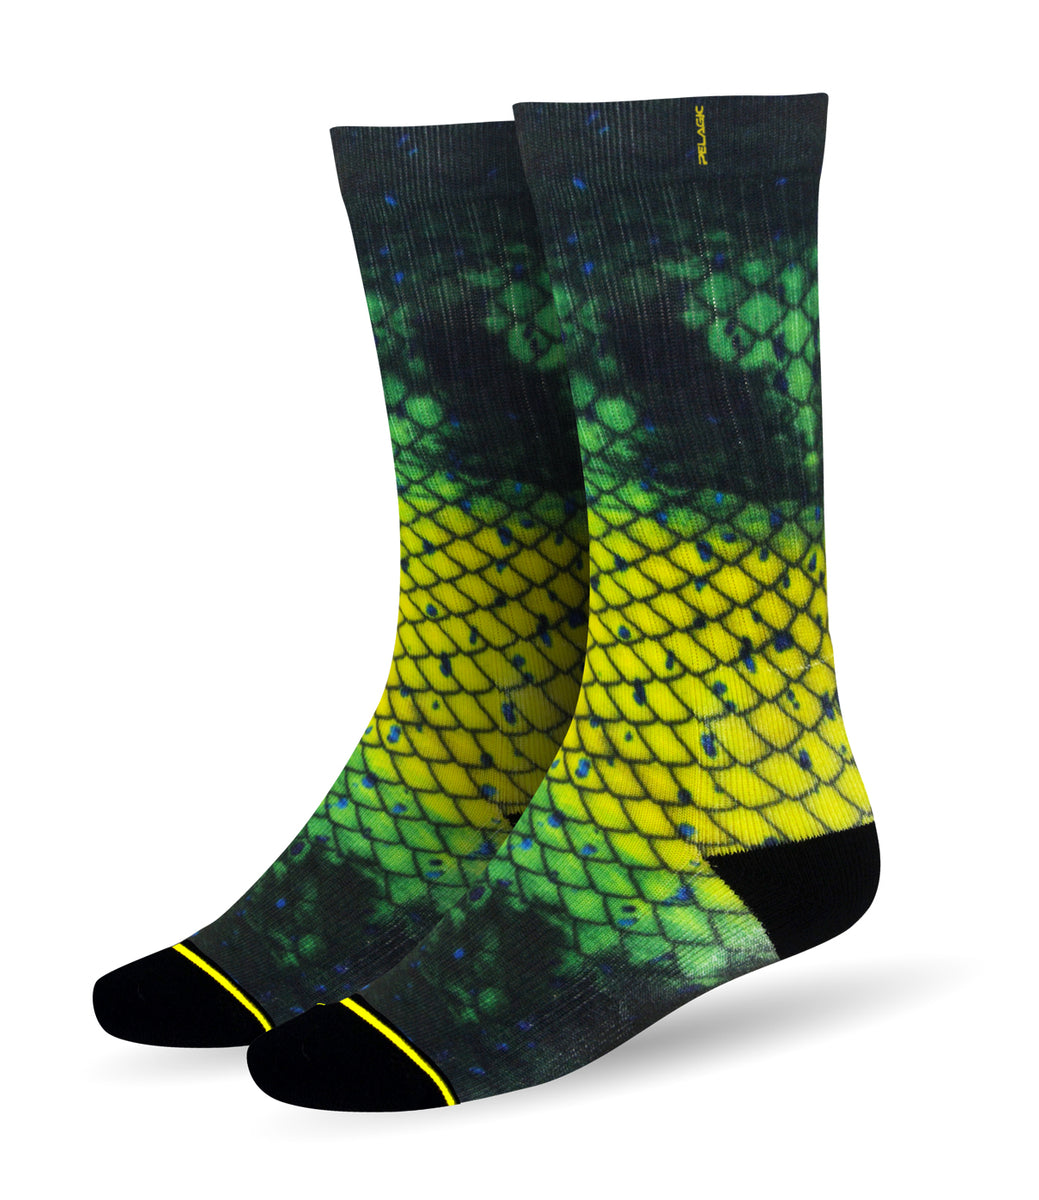 Proform Socks 2-Pack Dorado Big Image - 5